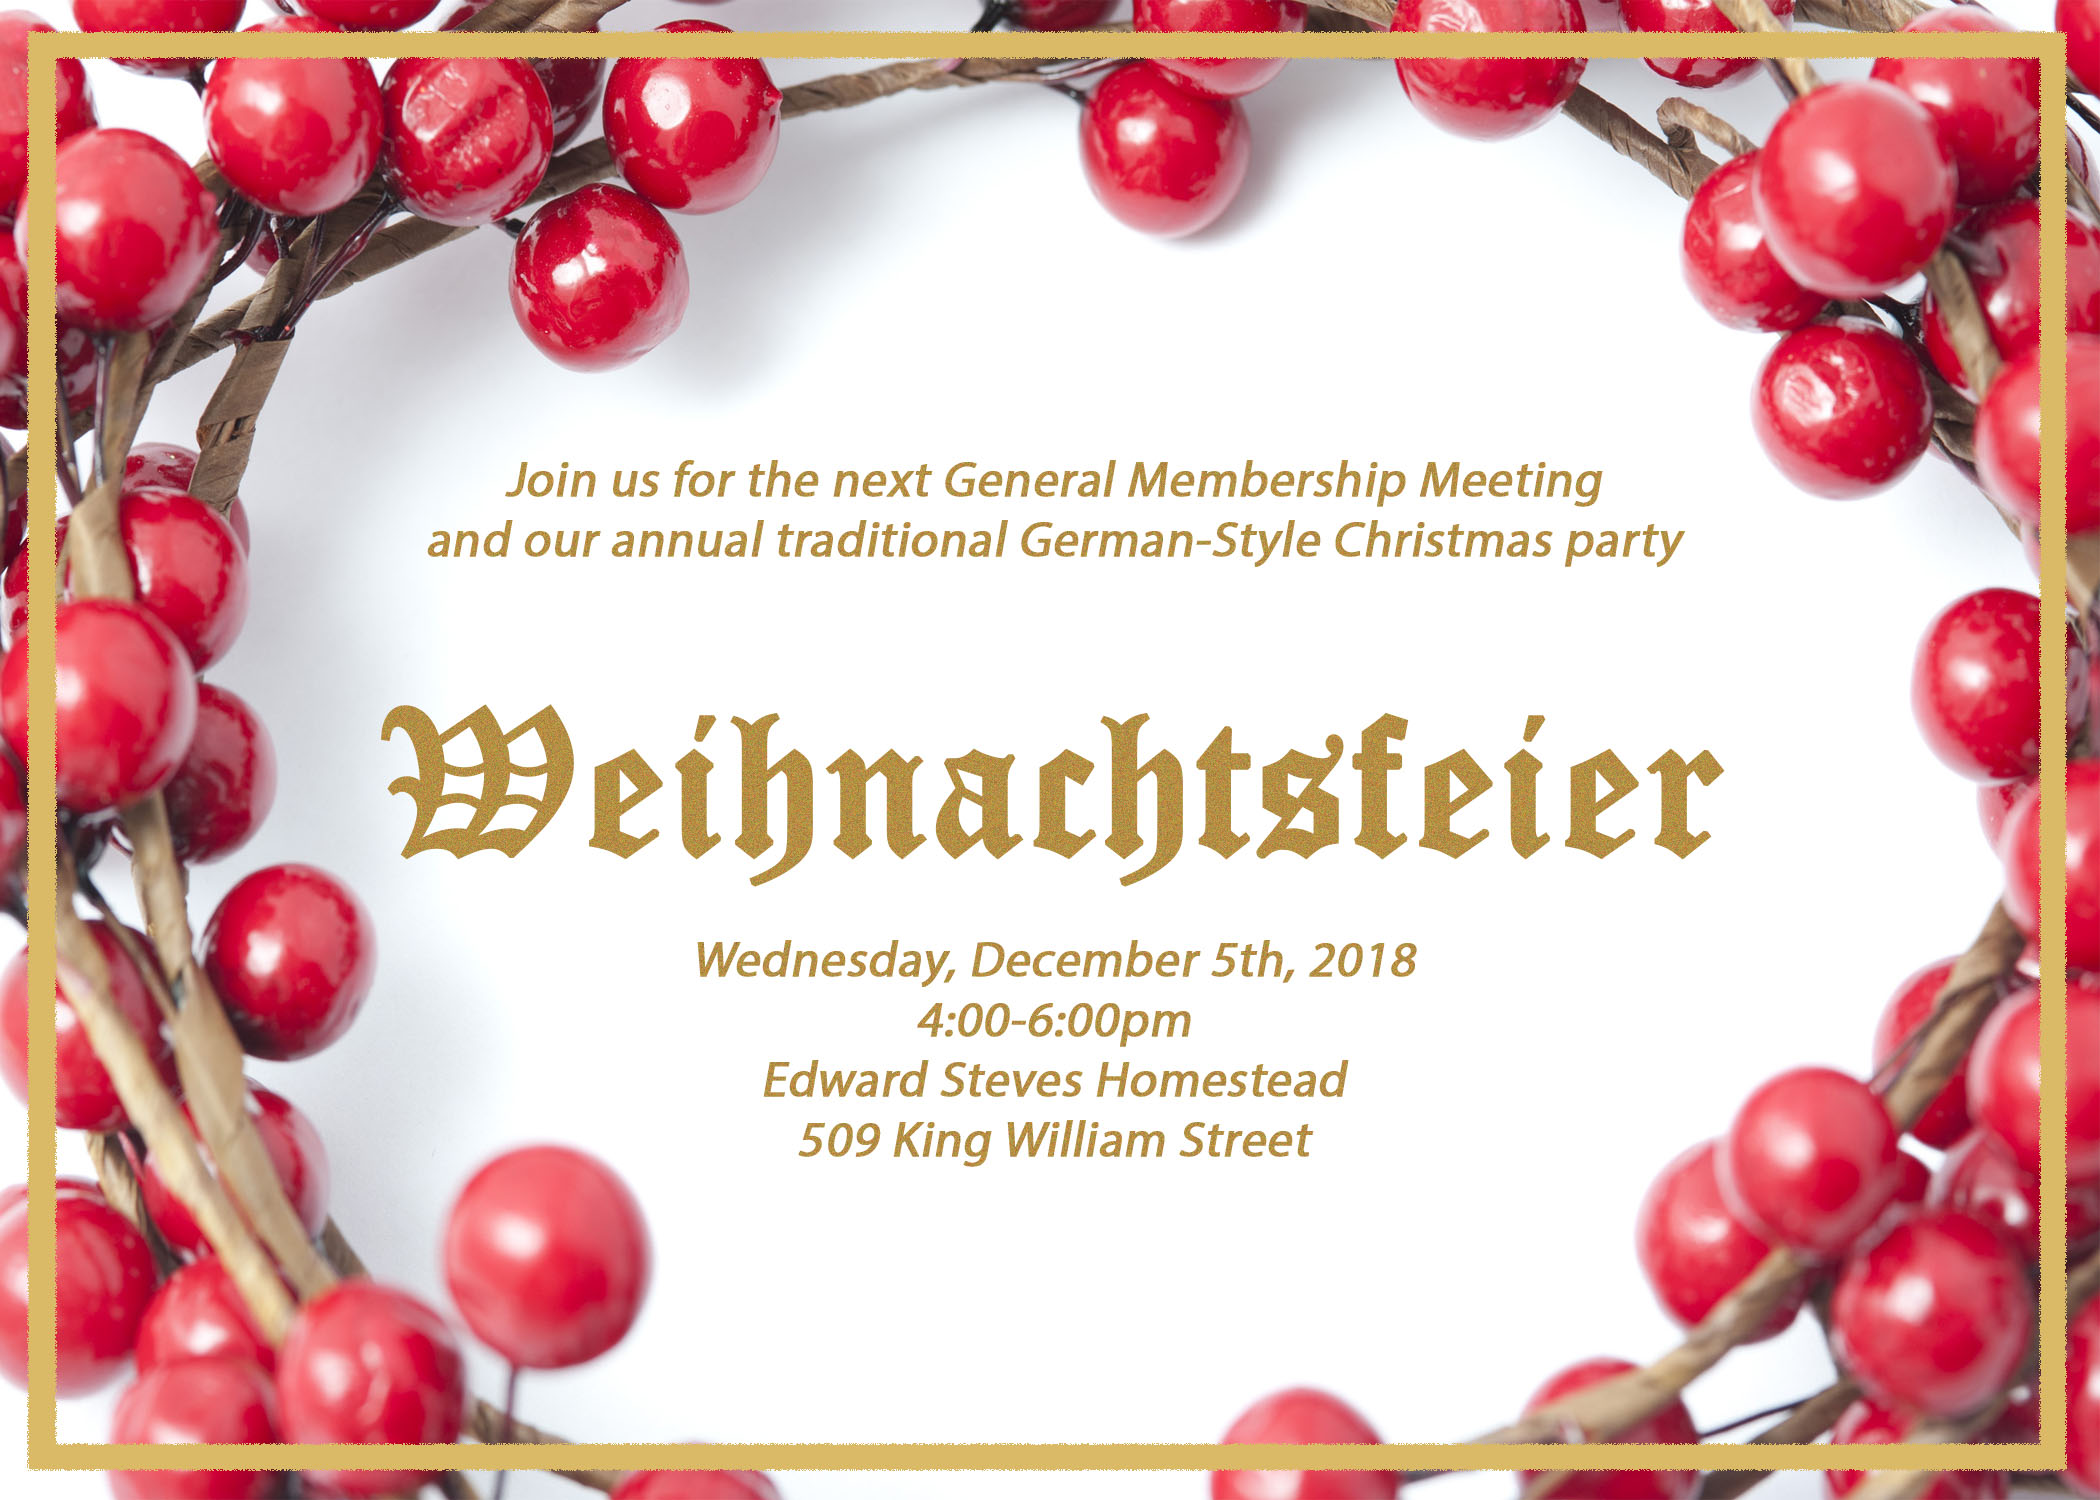 Join us for our annual general membership meeting and traditional German Christmas Party on December 2 from 4-6pm at the Steves Homnestead, located at 509 King William Street, San Antonio TX 78204